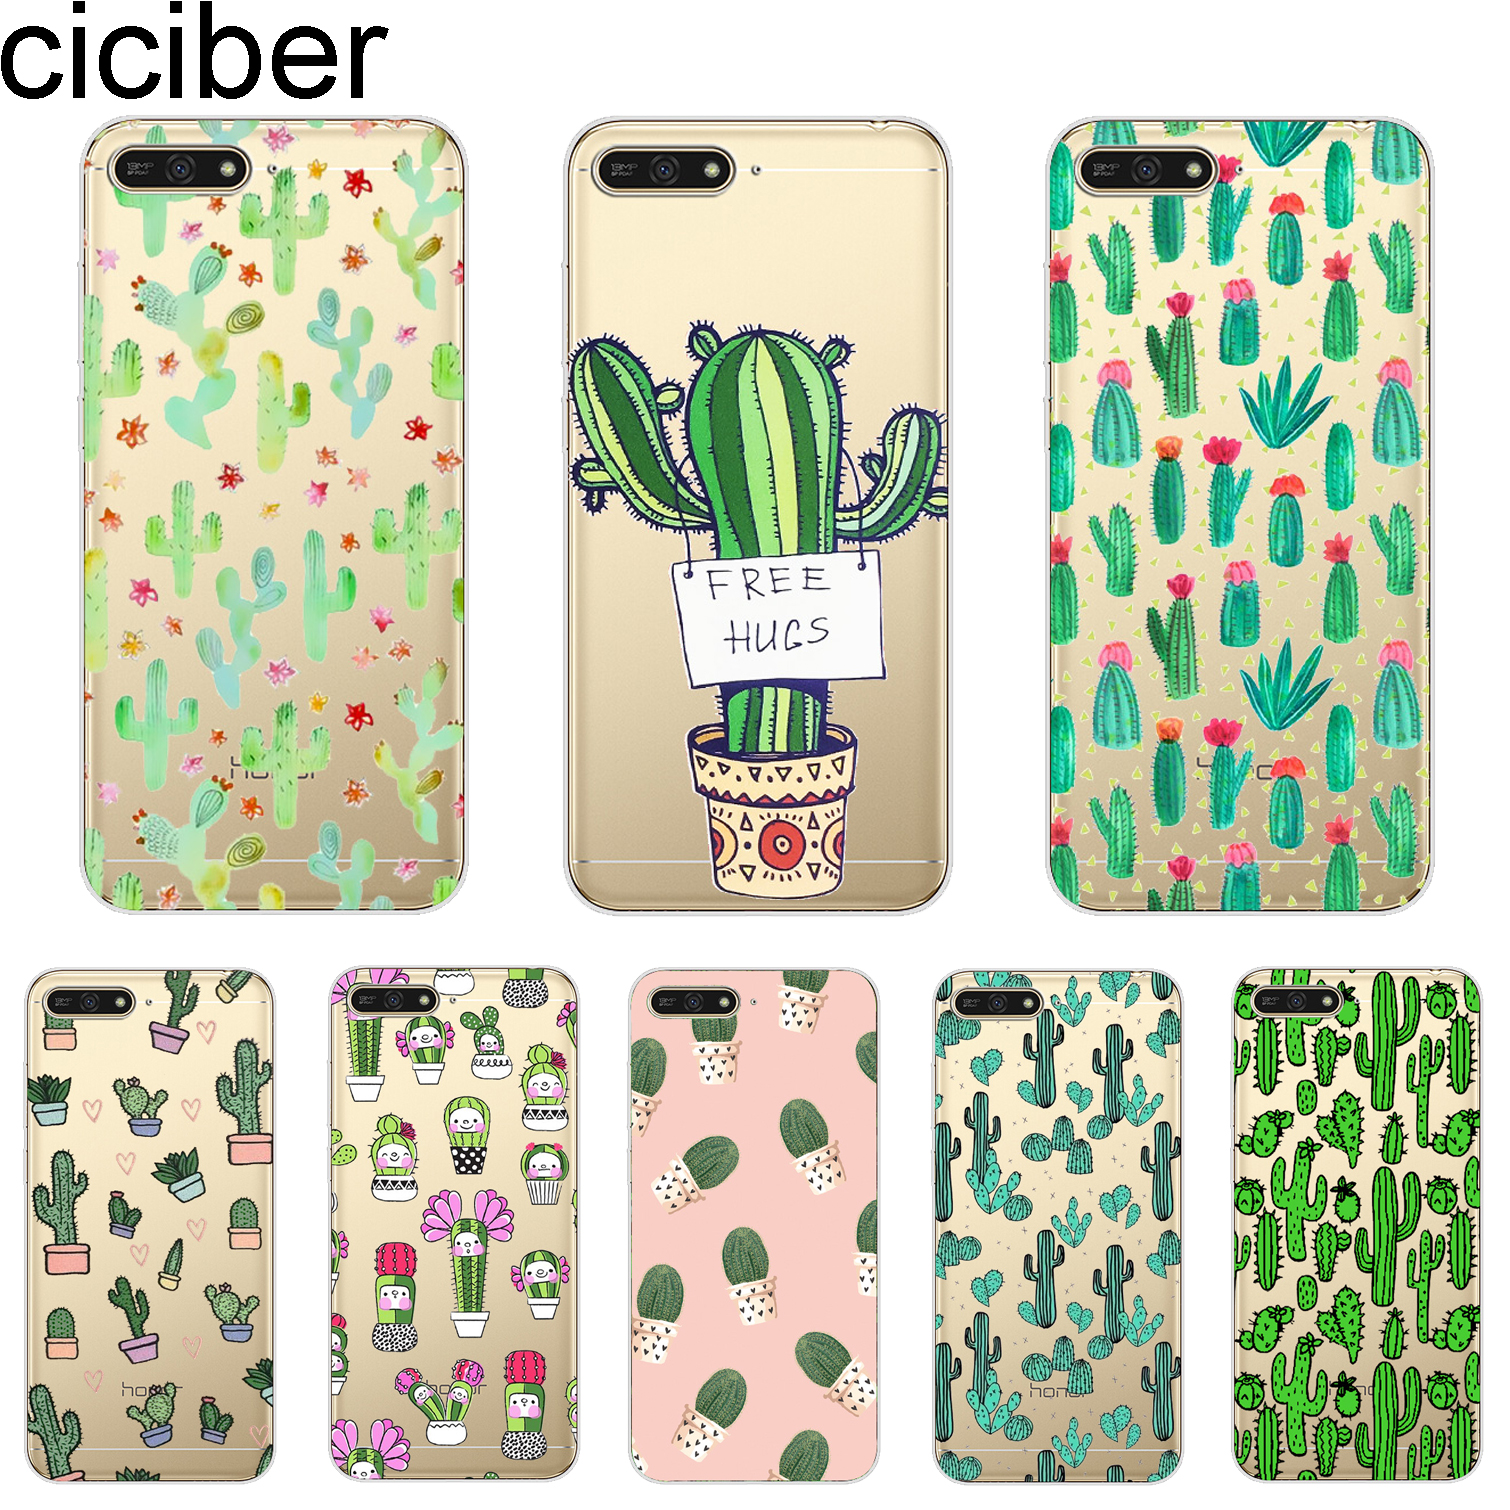 ciciber Cover For <font><b>Huawei</b></font> Y9 Y7 Y6 <font><b>Y5</b></font> Y3 Prime Pro 2018 2017 <font><b>2019</b></font> Phone Cases Cute Plant Cactus Shell <font><b>Capa</b></font> Coque Capinha Soft TPU image